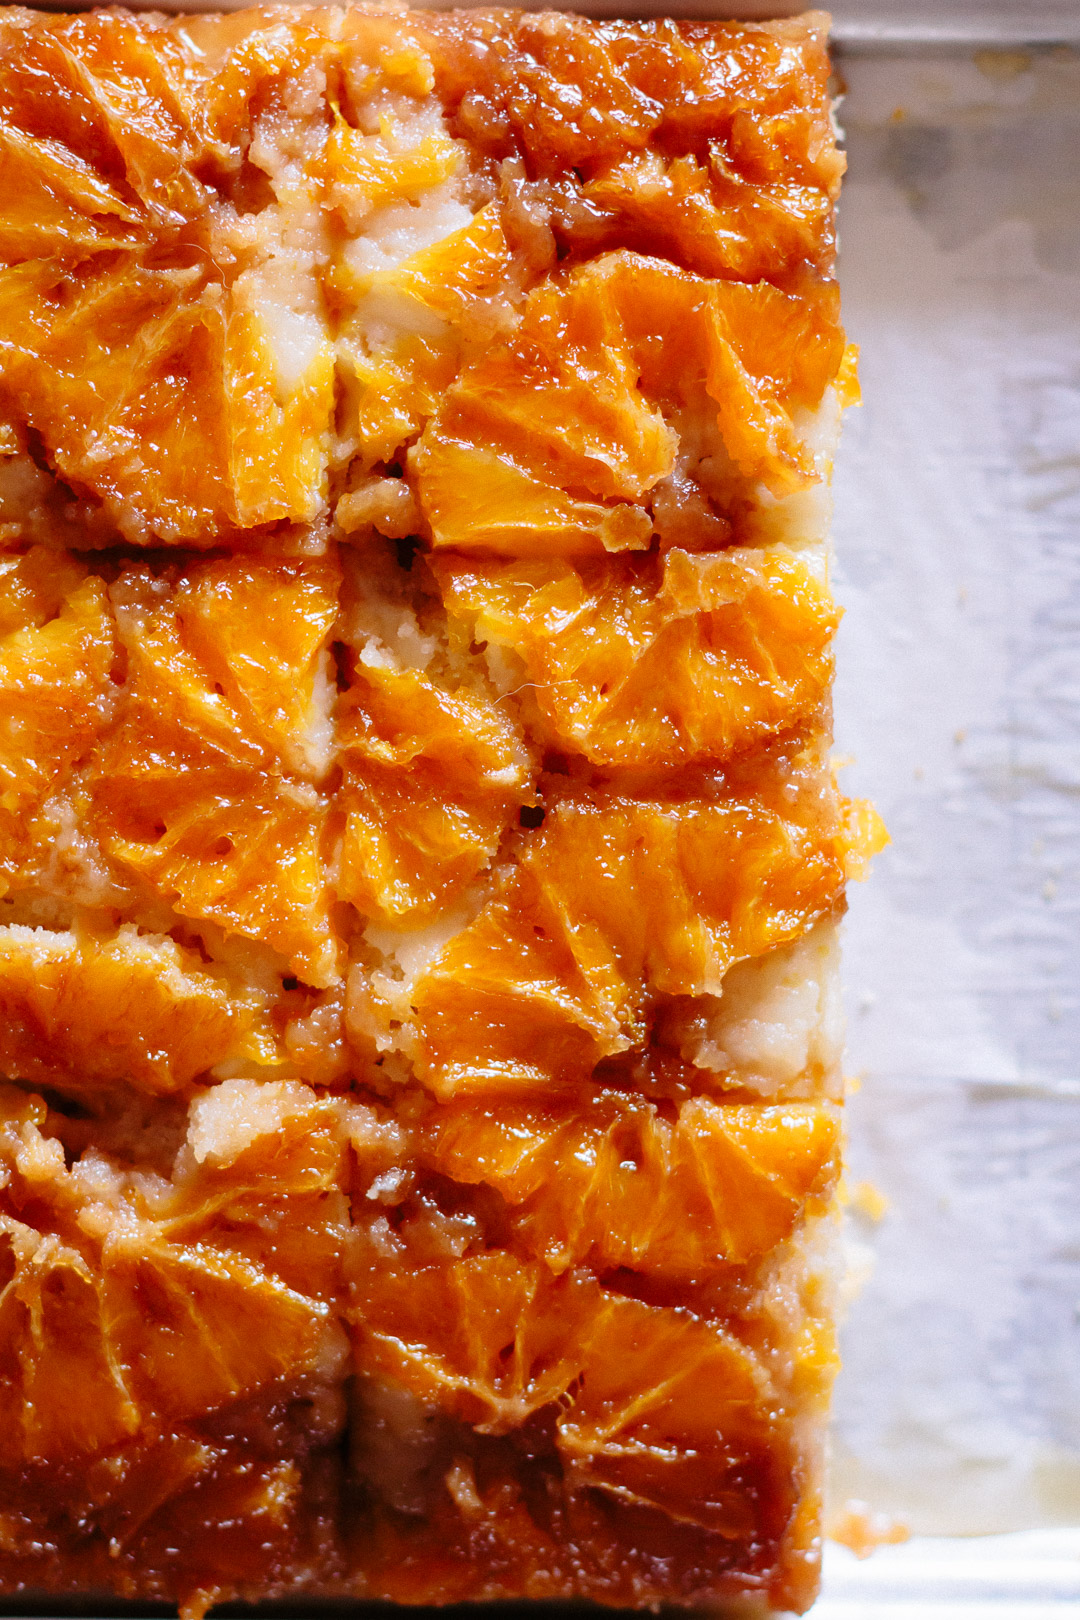 Overhead close up shot of the oranges on an upside down cake.